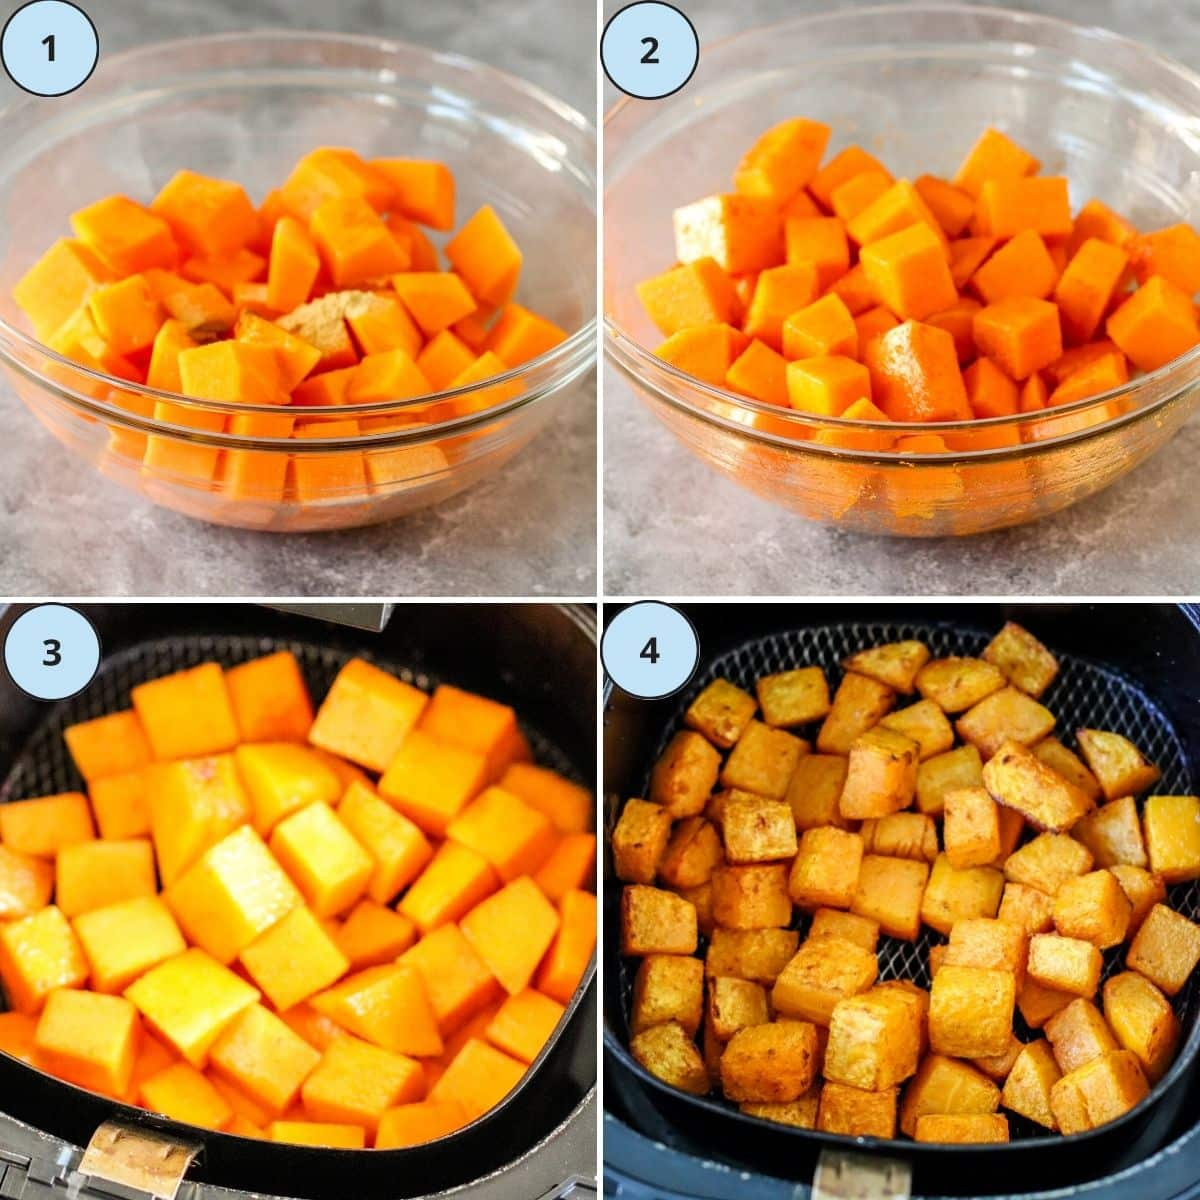 Collage of 4 images showing how to prepare this recipe.